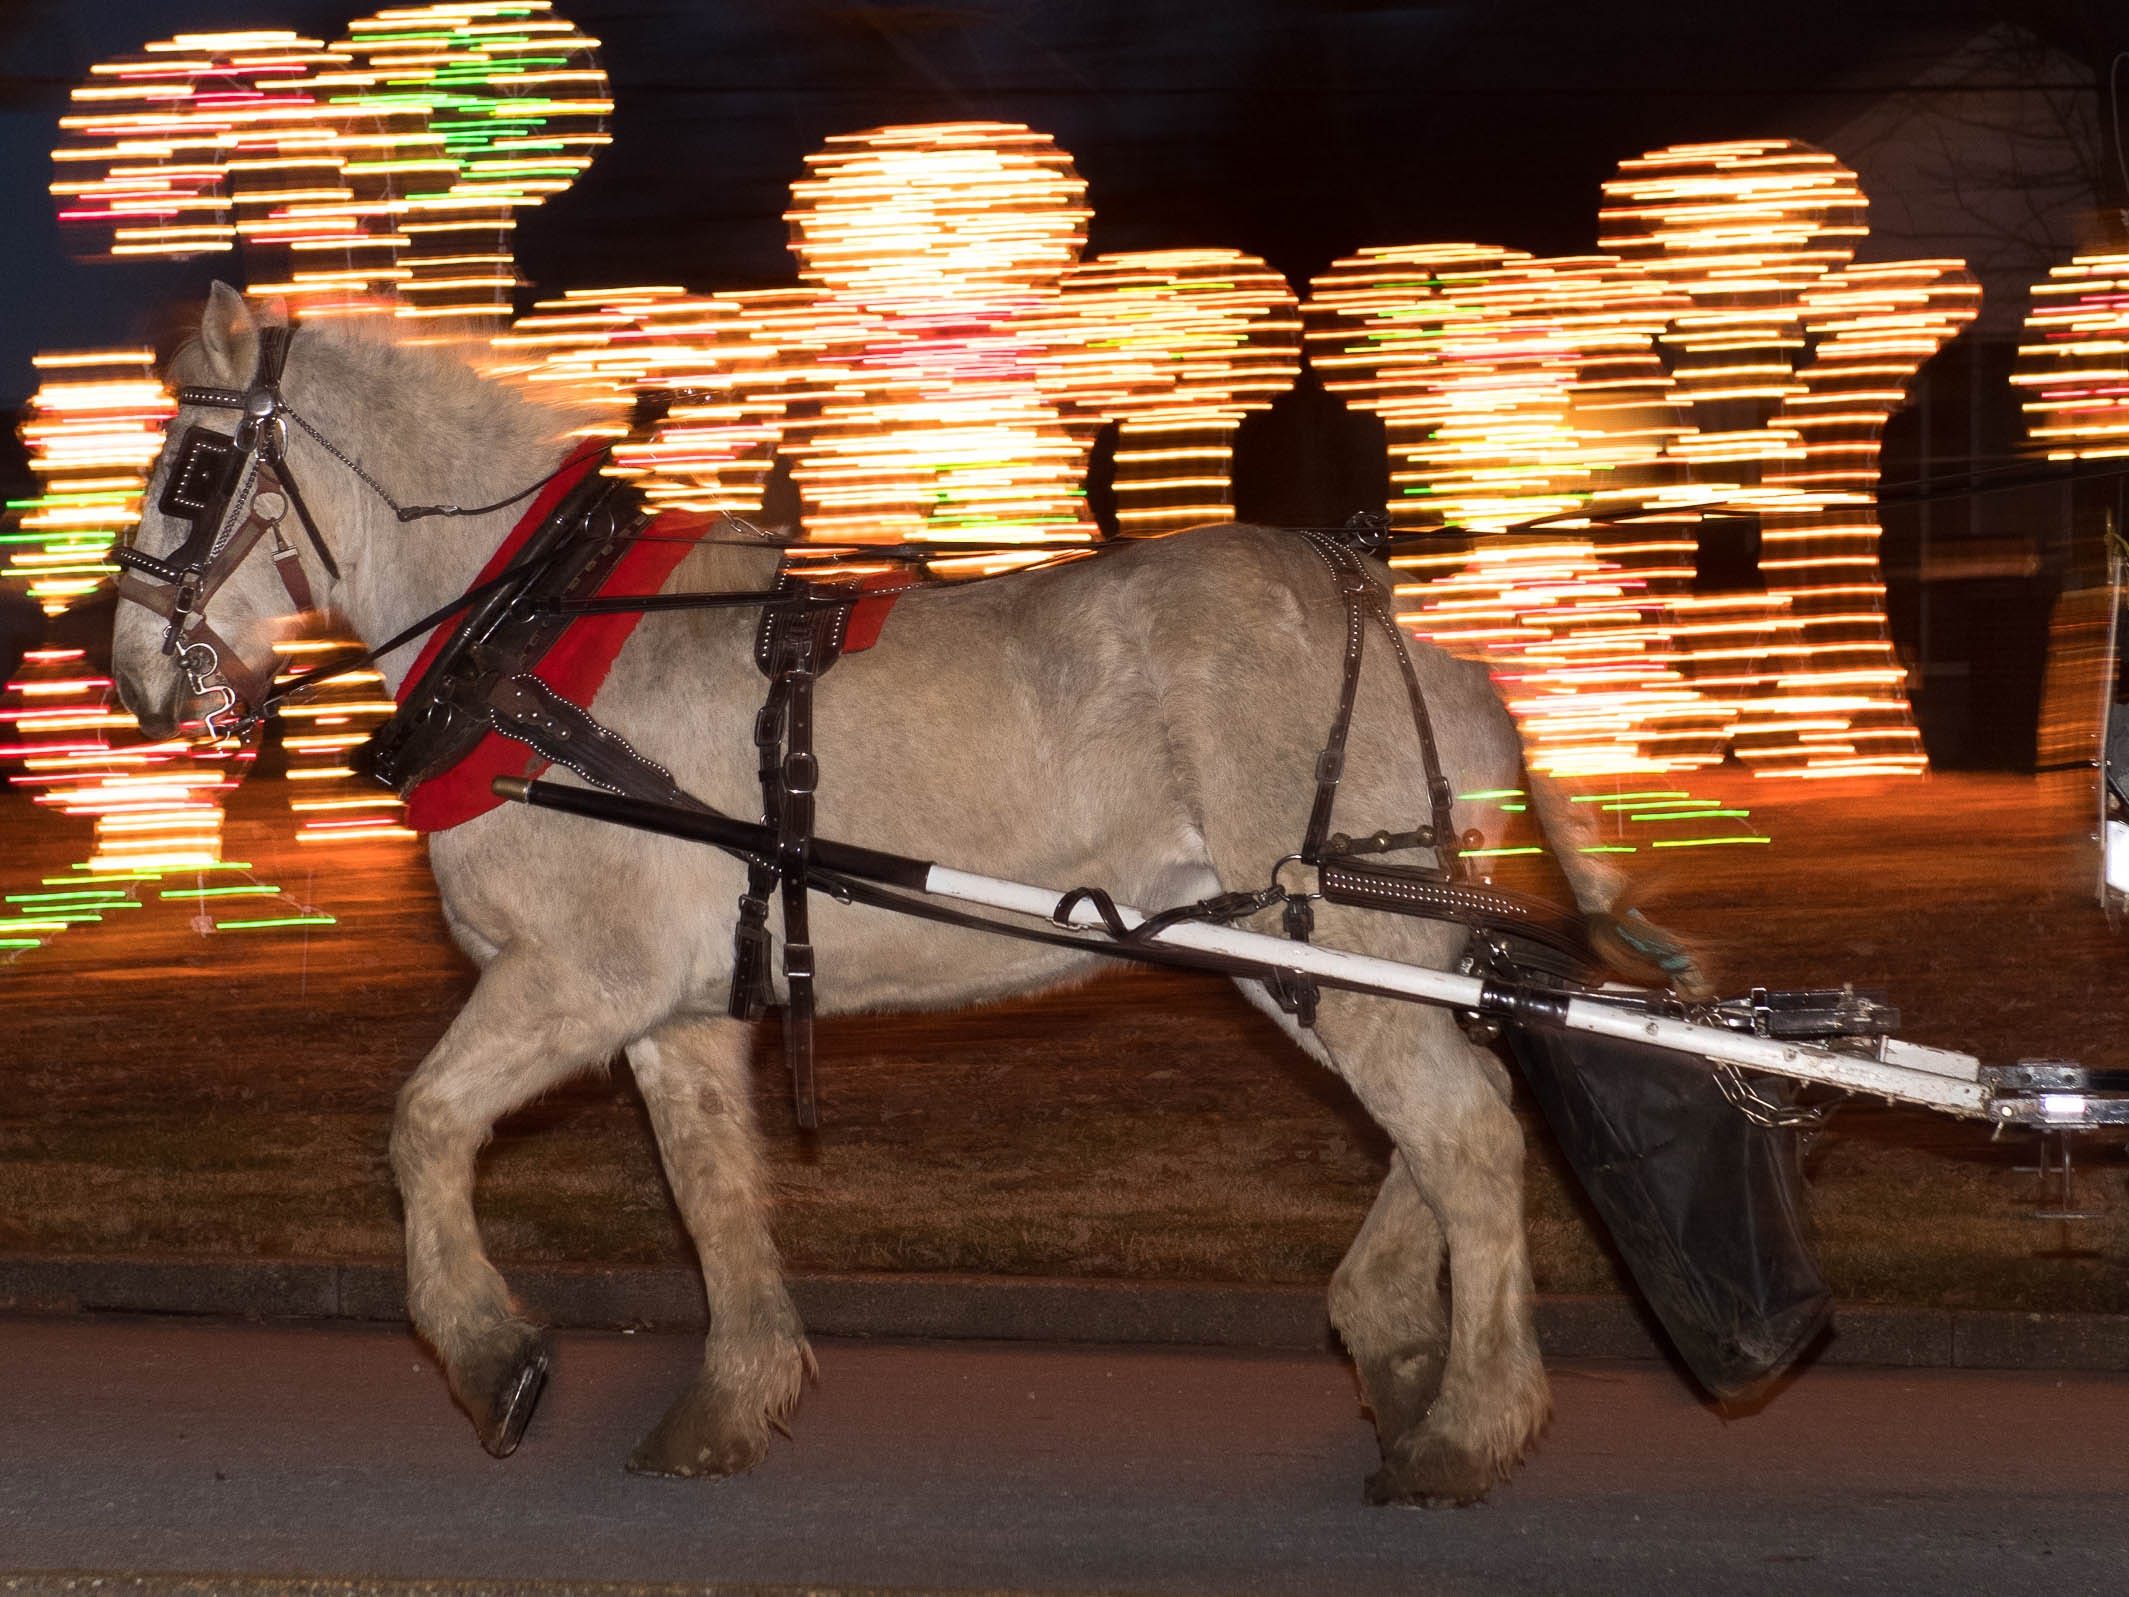 Shelia O'Risky, with the Horseshoe Bend Carriage Company, drives Queenie, with a load of visitors, through the Ritzy's Fantasy of Lights in Garvin Park Tuesday, December 18, 2018.